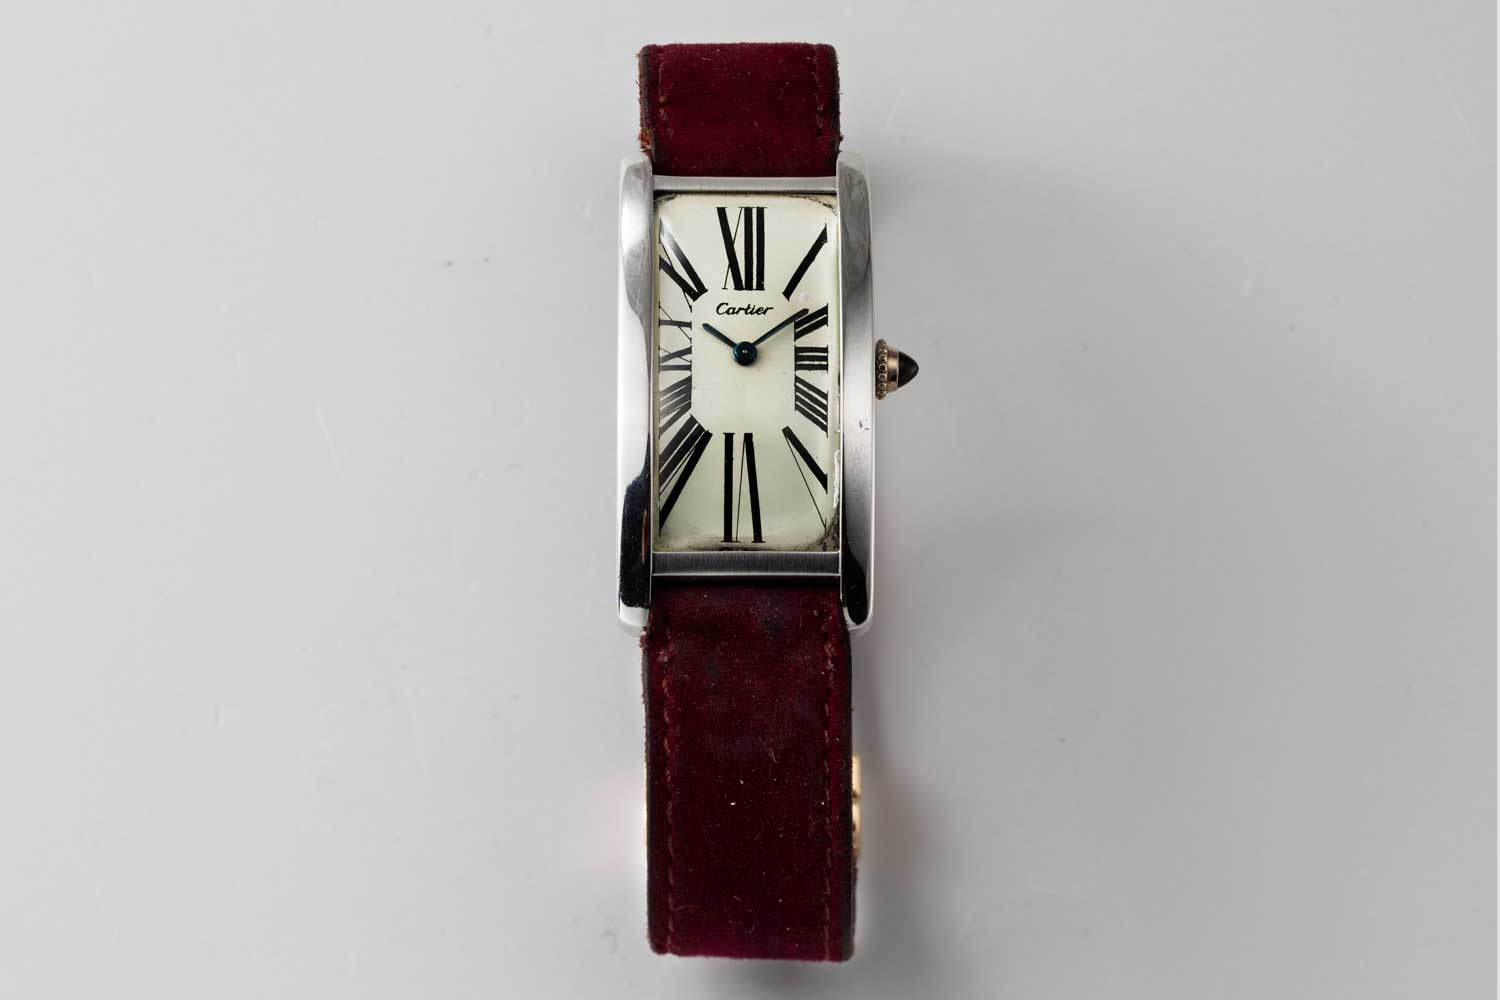 A 9-lignes, 1970 London Cartier Tank Cintrée in the rarer white gold case; this particular example is from the private collection of Auro Montanari (©Revolution)